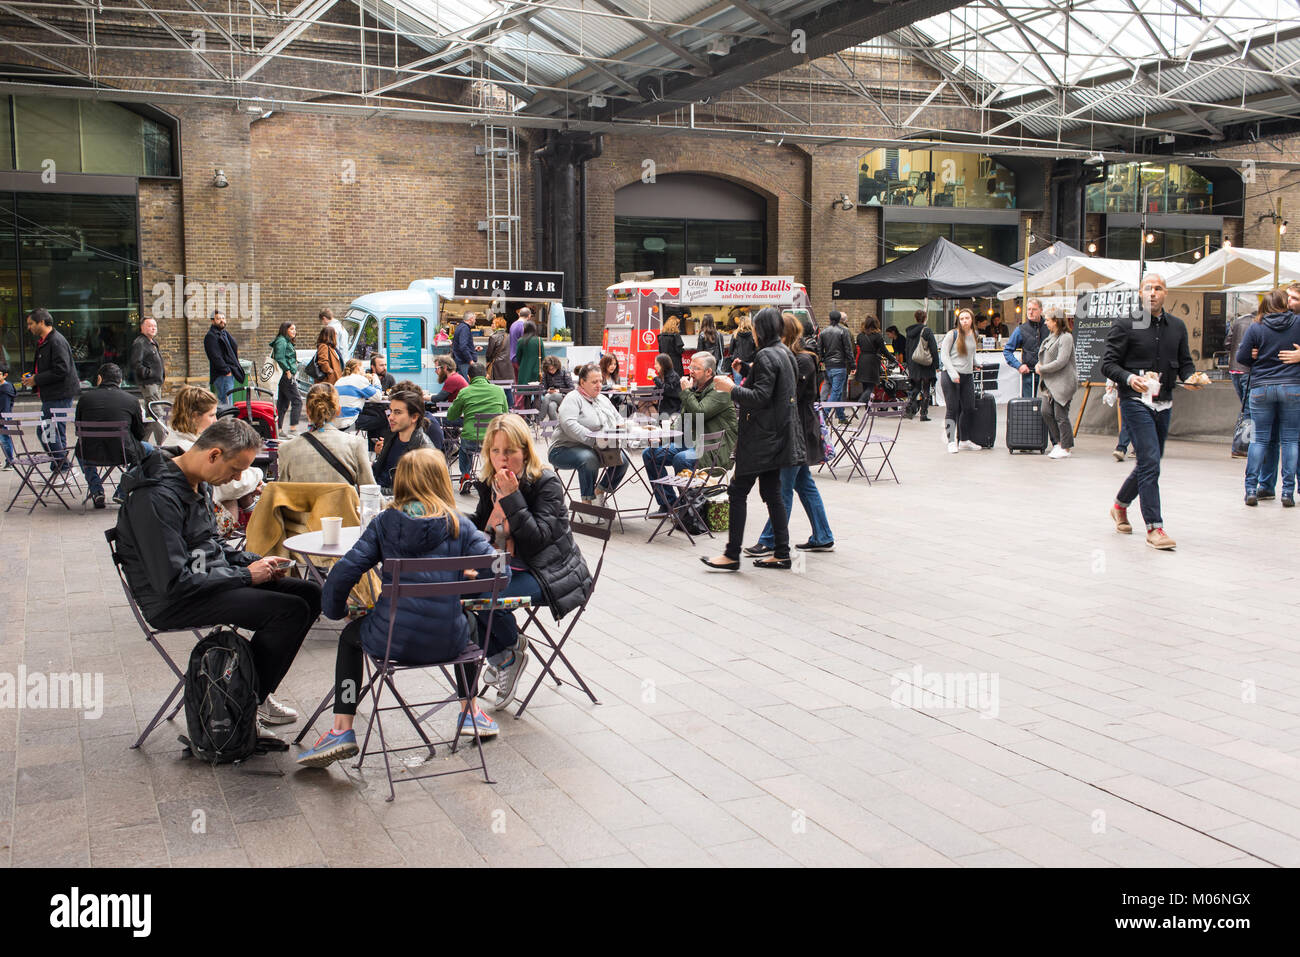 People eating and sitting in the inddor area of the Canopy Market, King's Cross, London. Canopy market is a - Stock Image